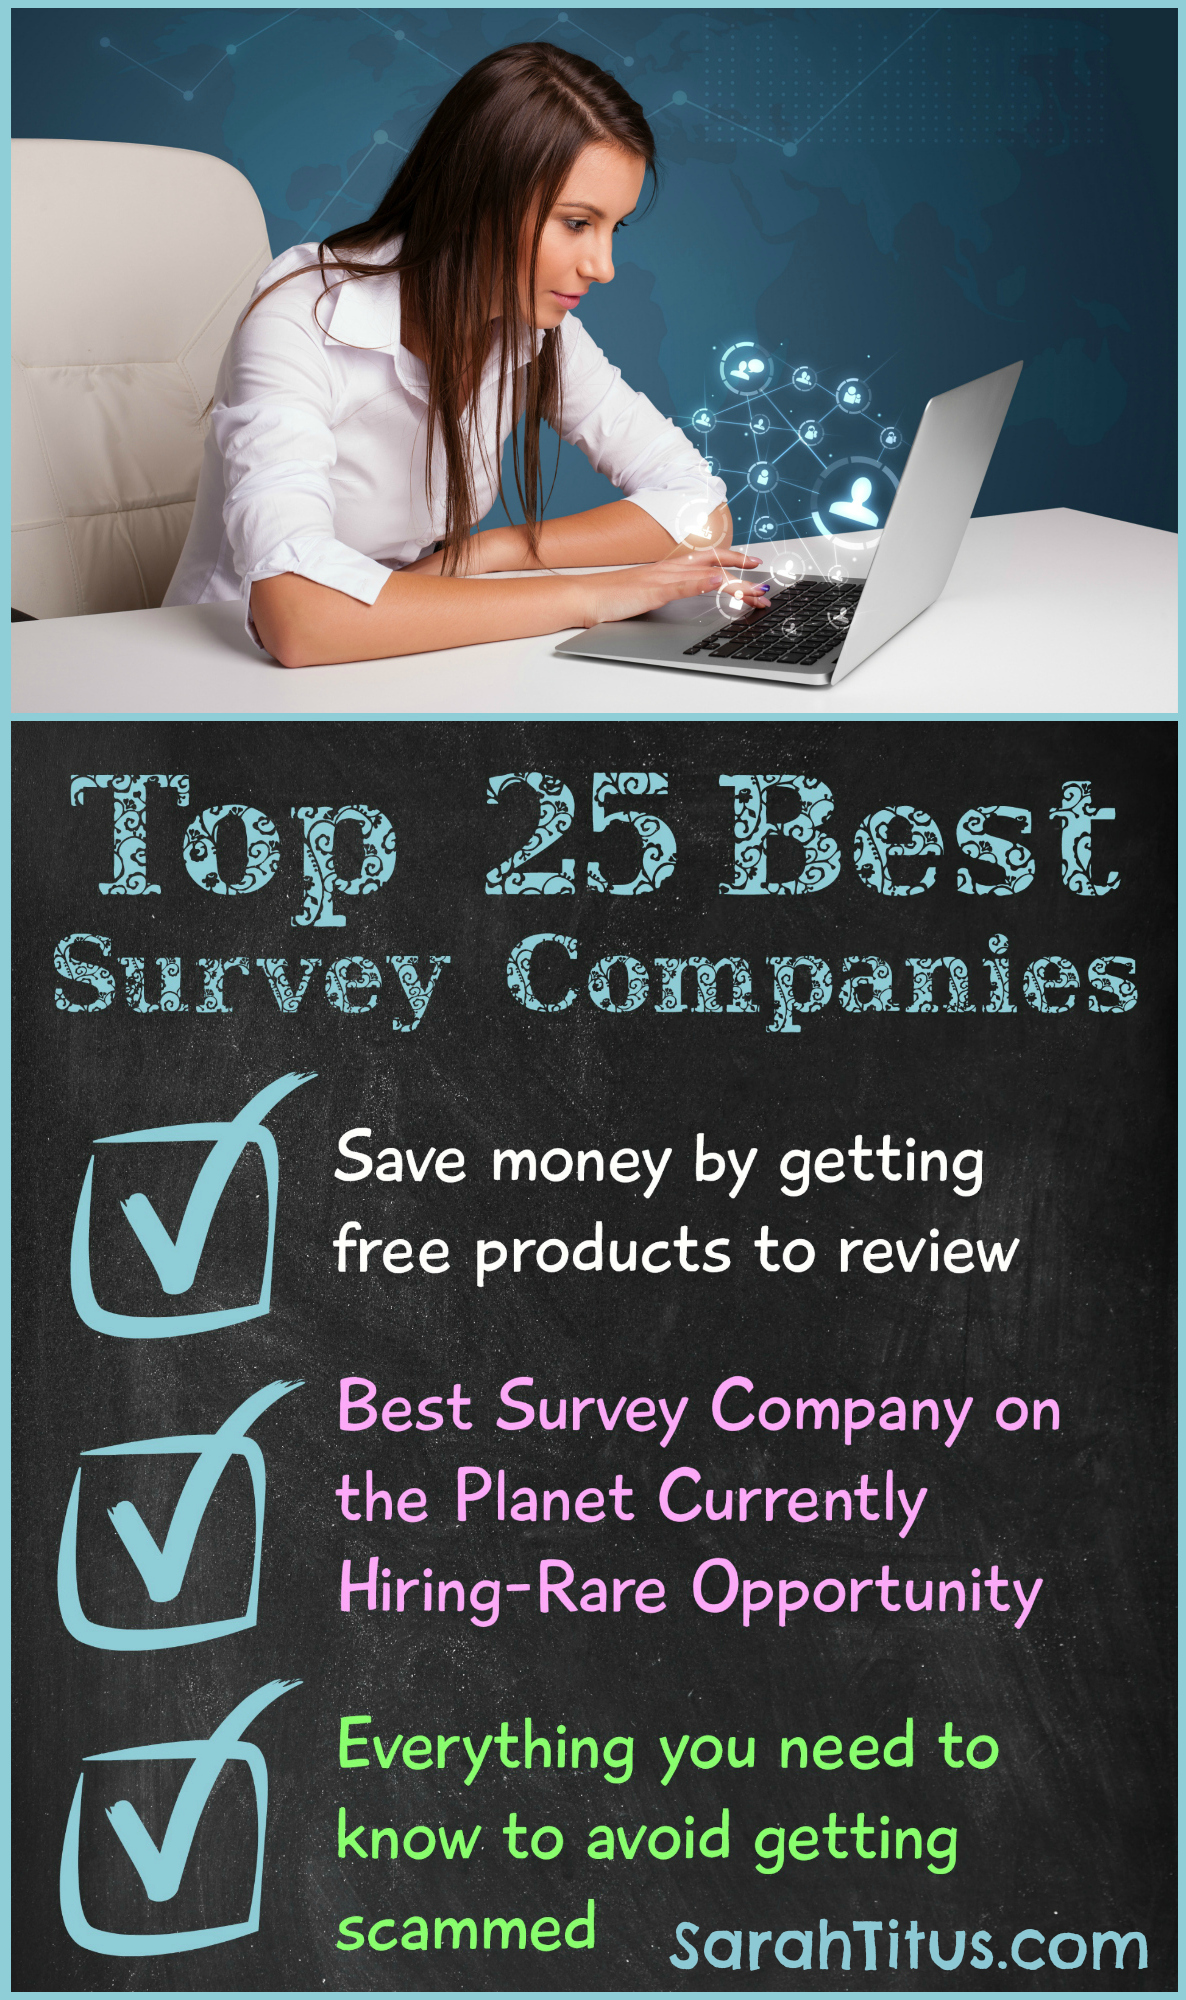 Best 25 Professional Makeup Ideas On Pinterest: Top 25 Best Survey Companies